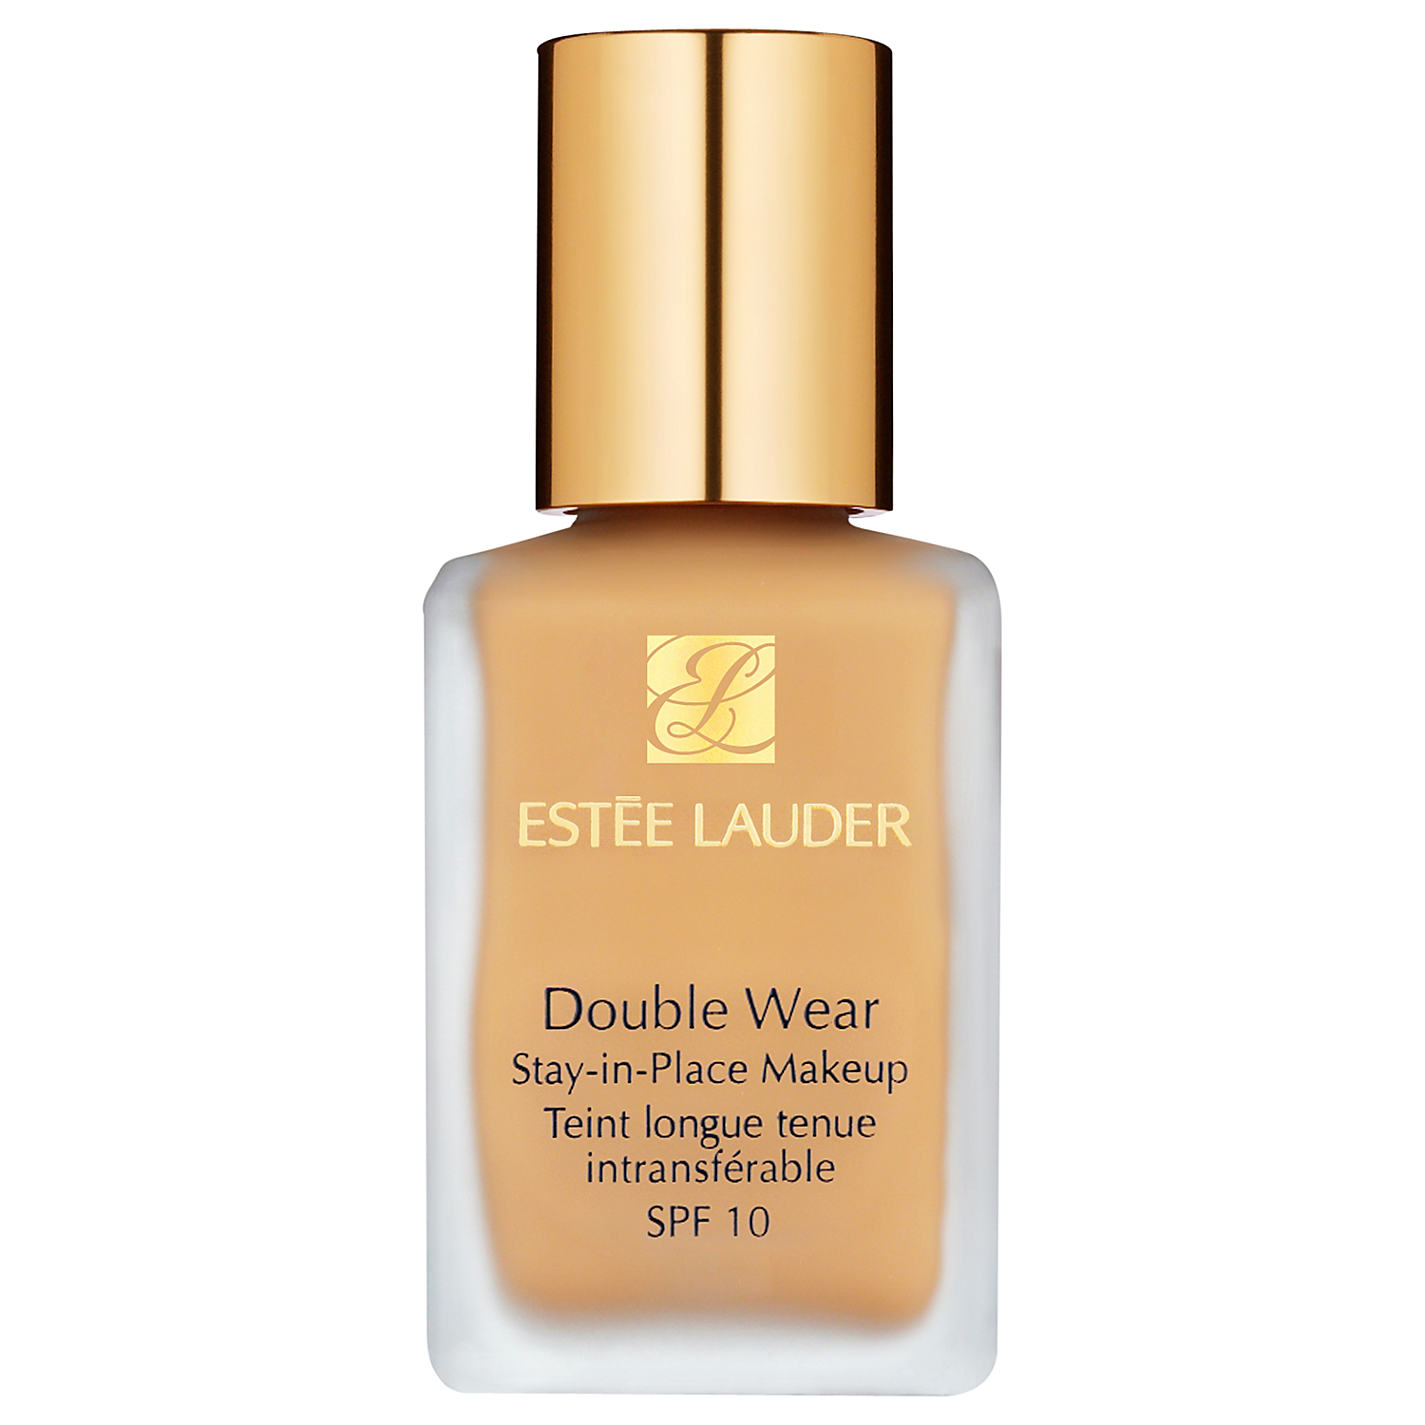 Top 10 Foundations for Oily Skin in India, Prices, Buy Online, Indian ...